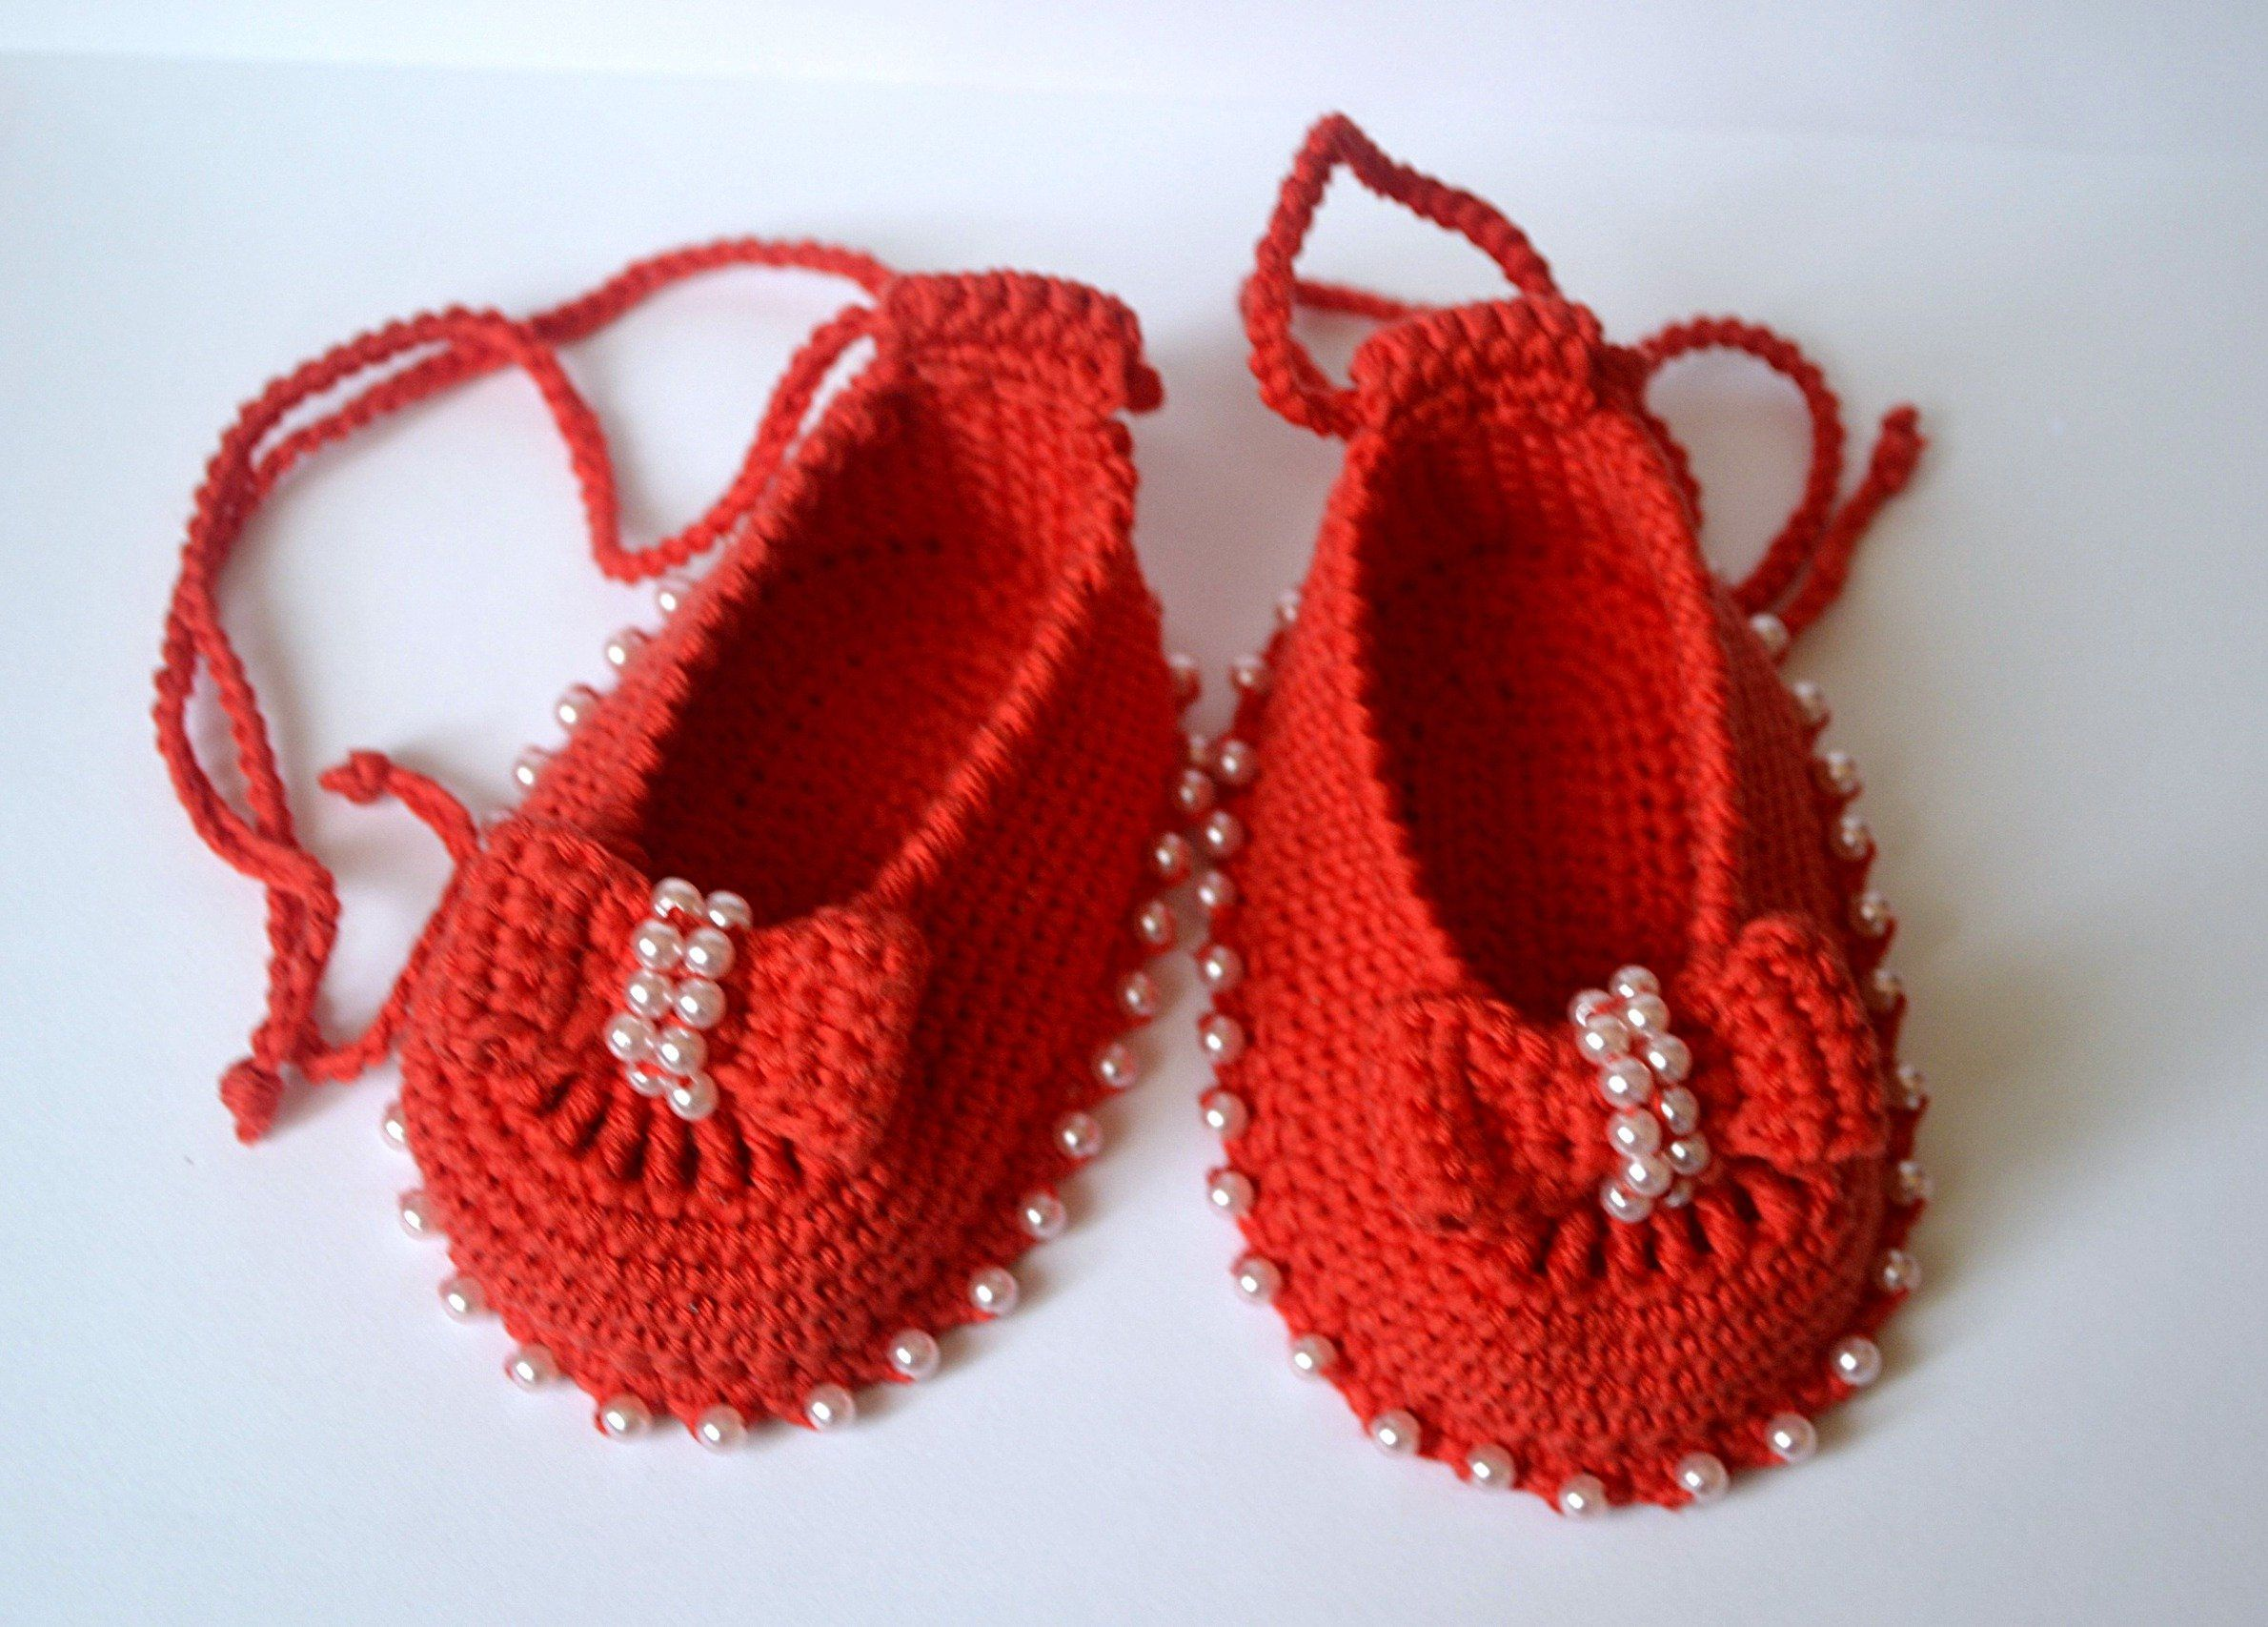 c2bce1834c782 Crochet baby booties, Mary Jane shoes, newborn shoes 3 6 month red ...